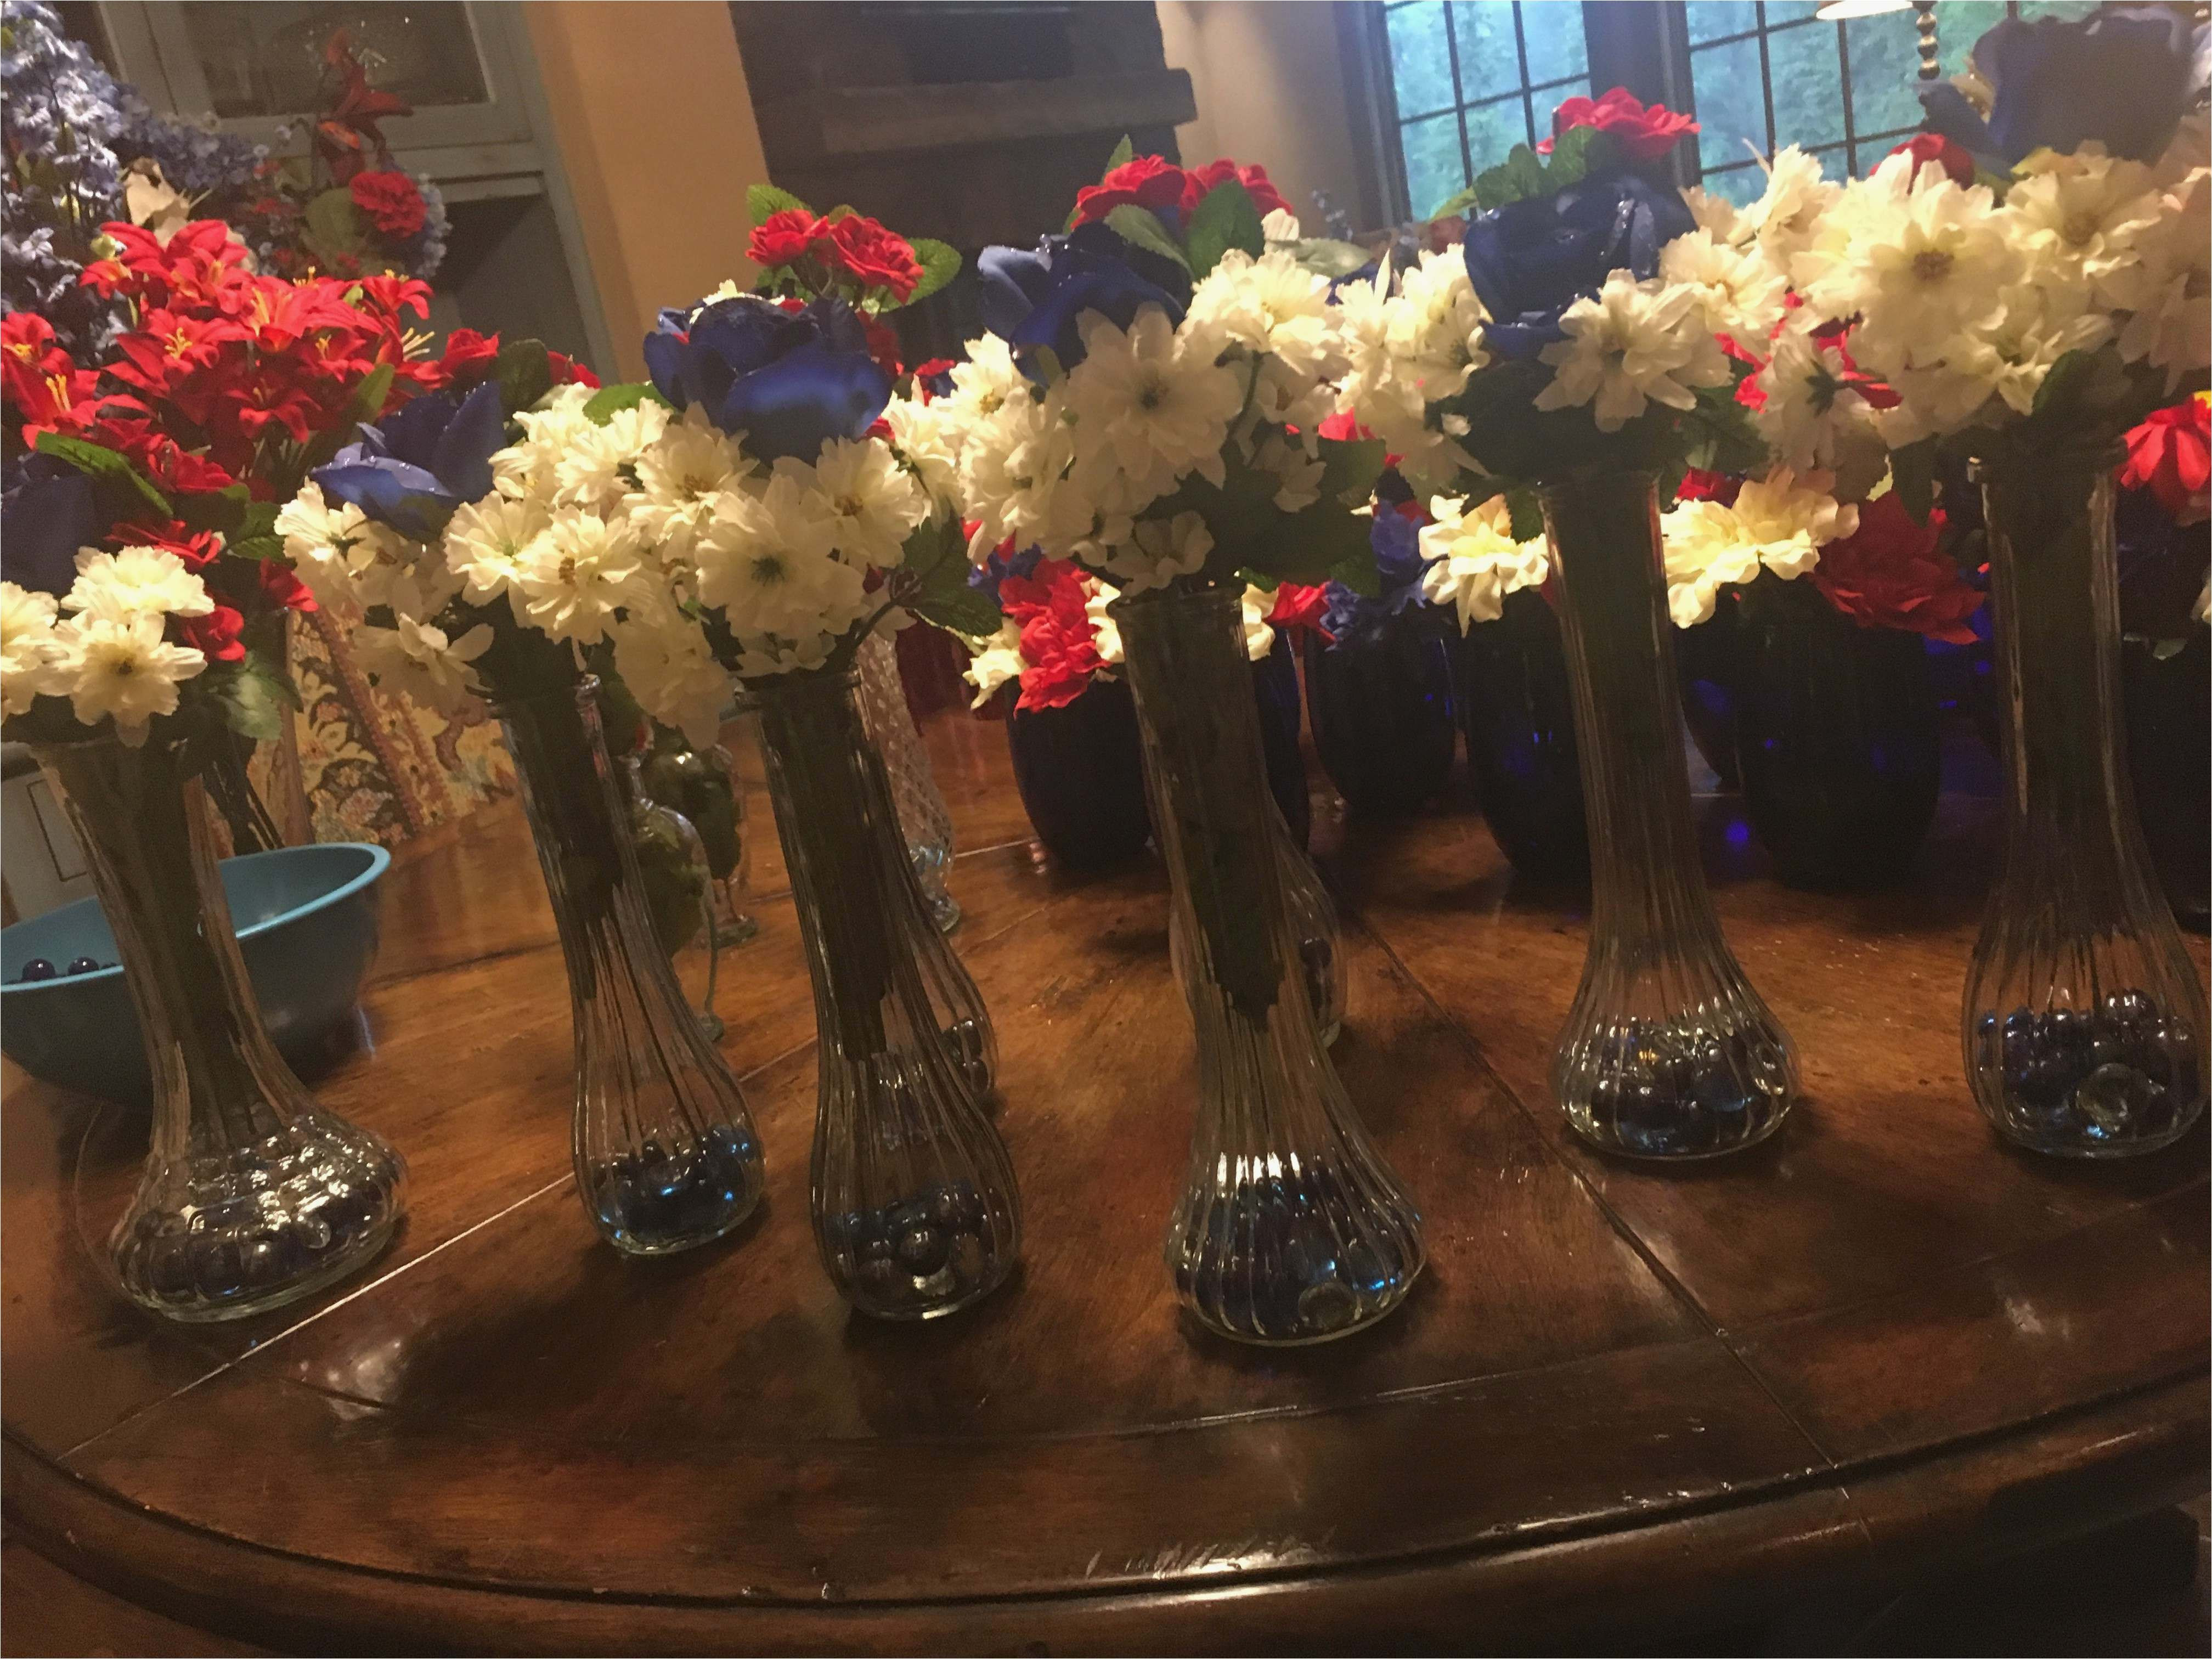 22 Cute 32 Eiffel tower Vases 2021 free download 32 eiffel tower vases of 20 awesome best flowers style best wedding bridal marriage plan ideas with regard to simple diy wedding decor best dollar tree wedding decorations awesome h vases do